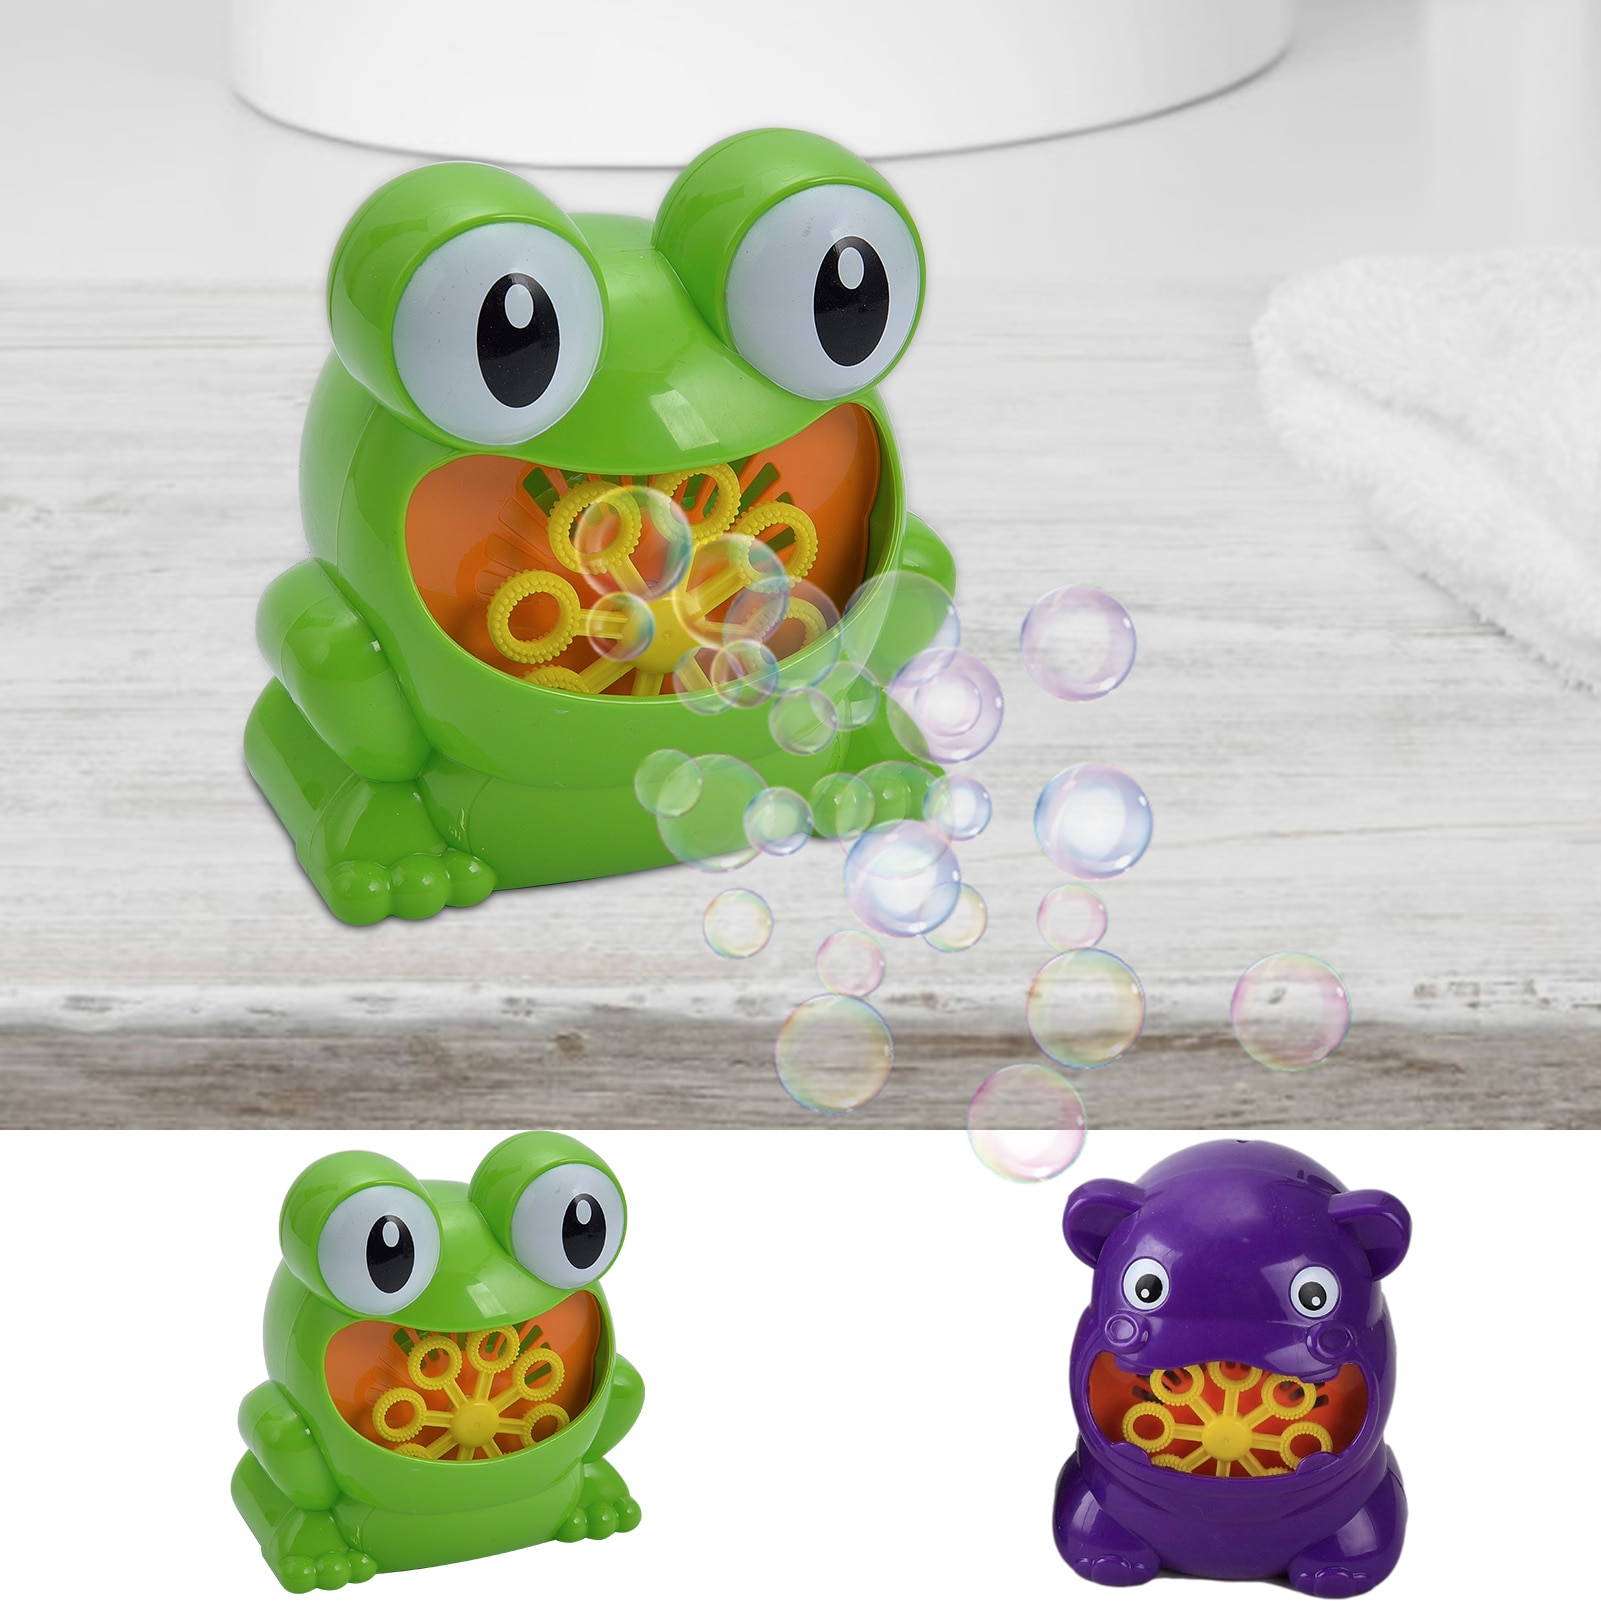 Cute Bubble BlowerMaker Fun Frog Hippo Bath Toy Bubbler Outdoor Toys For ChildrenToddlers Birthday Party Gift  - buy with discount